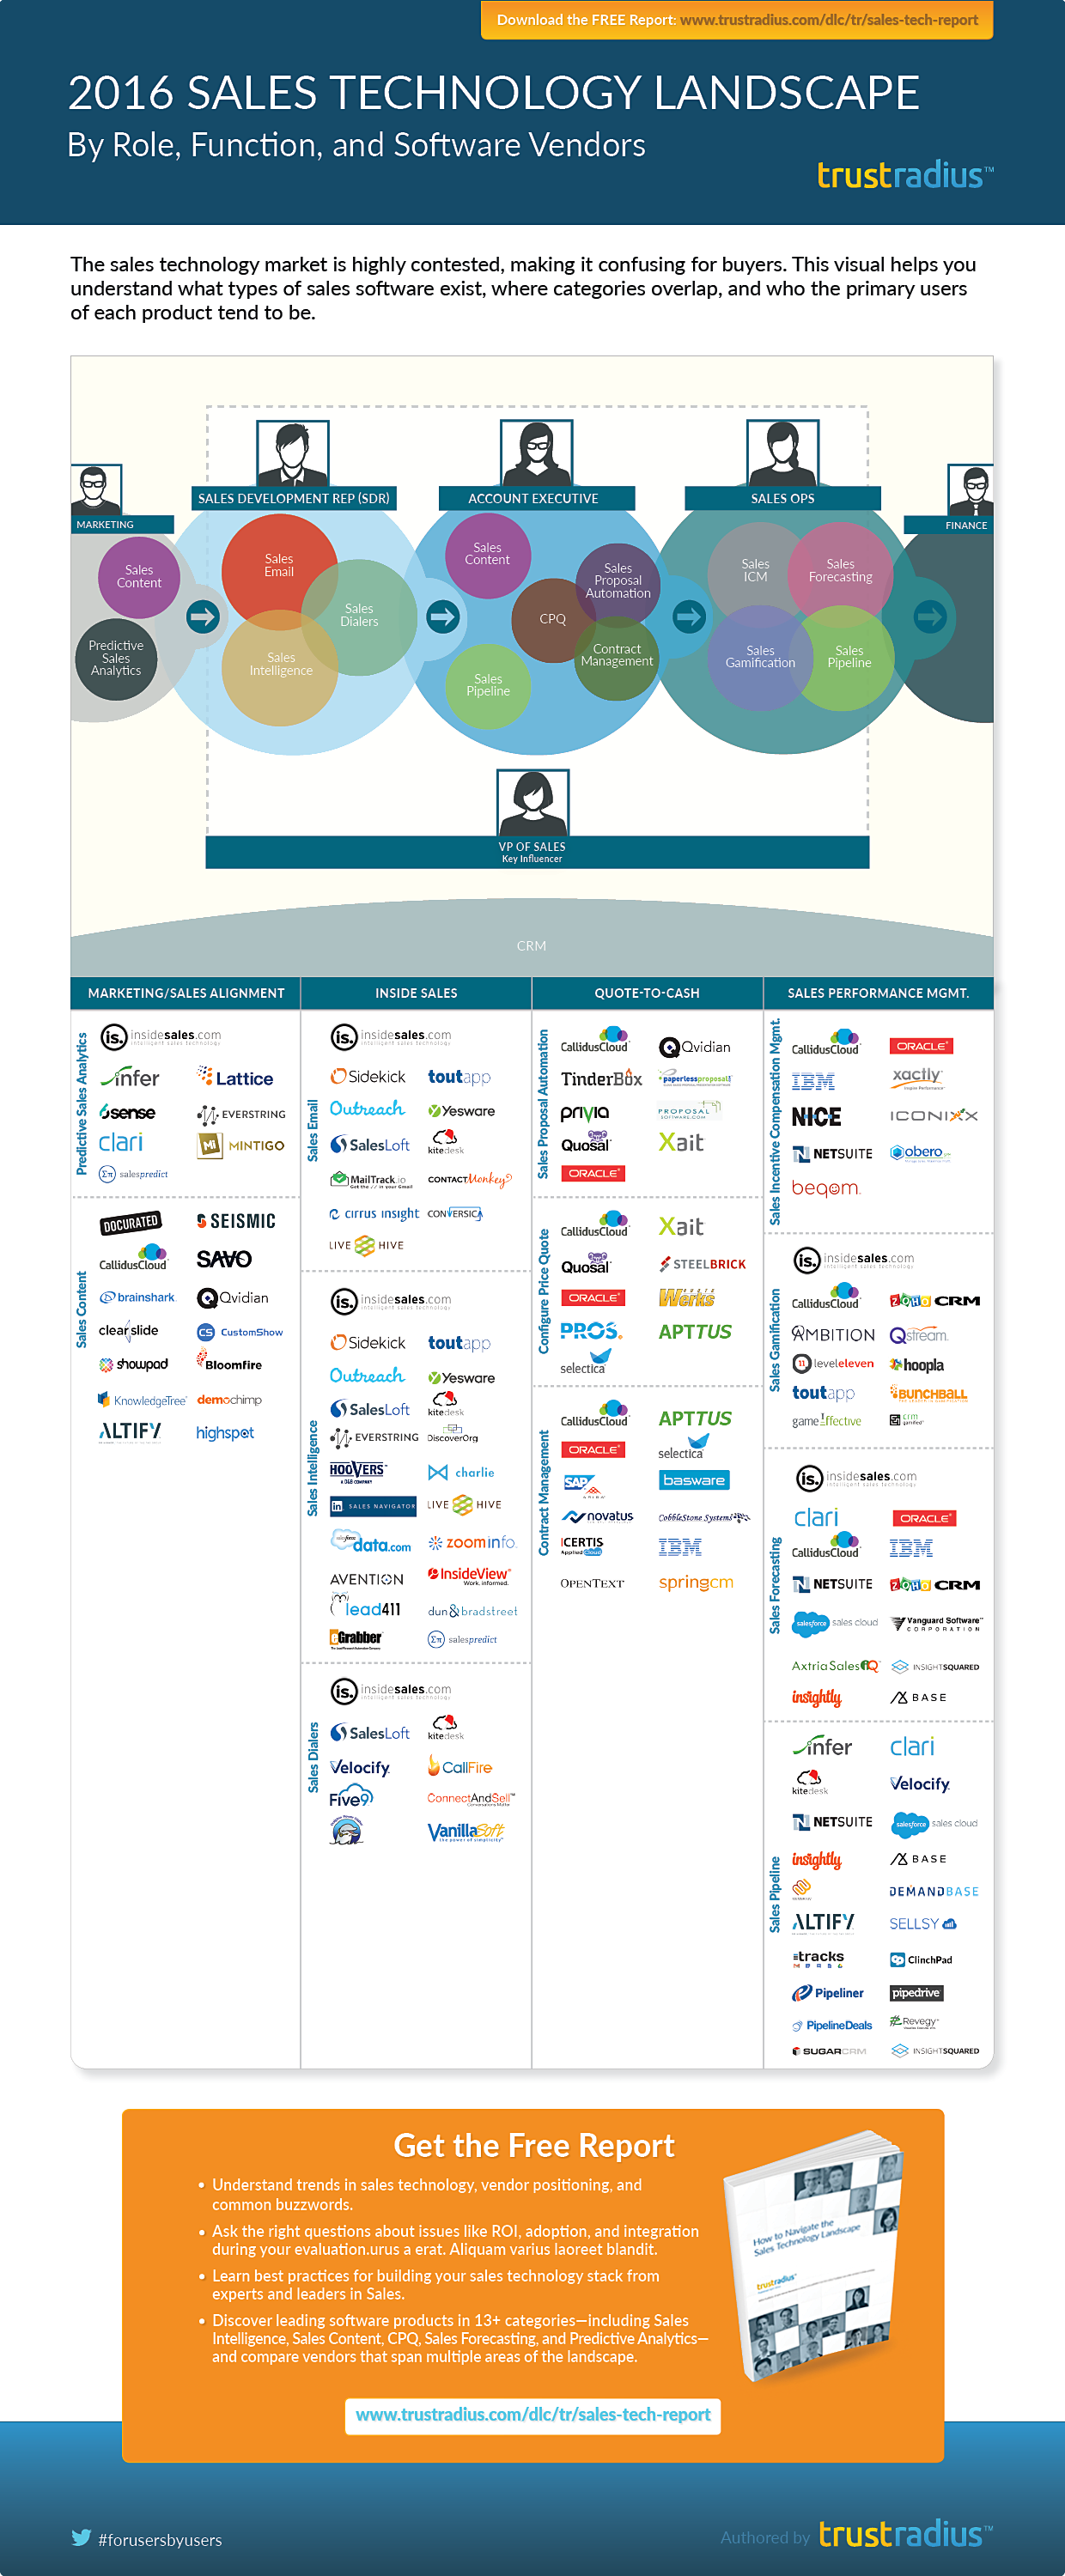 2016 Sales Technology Landscape